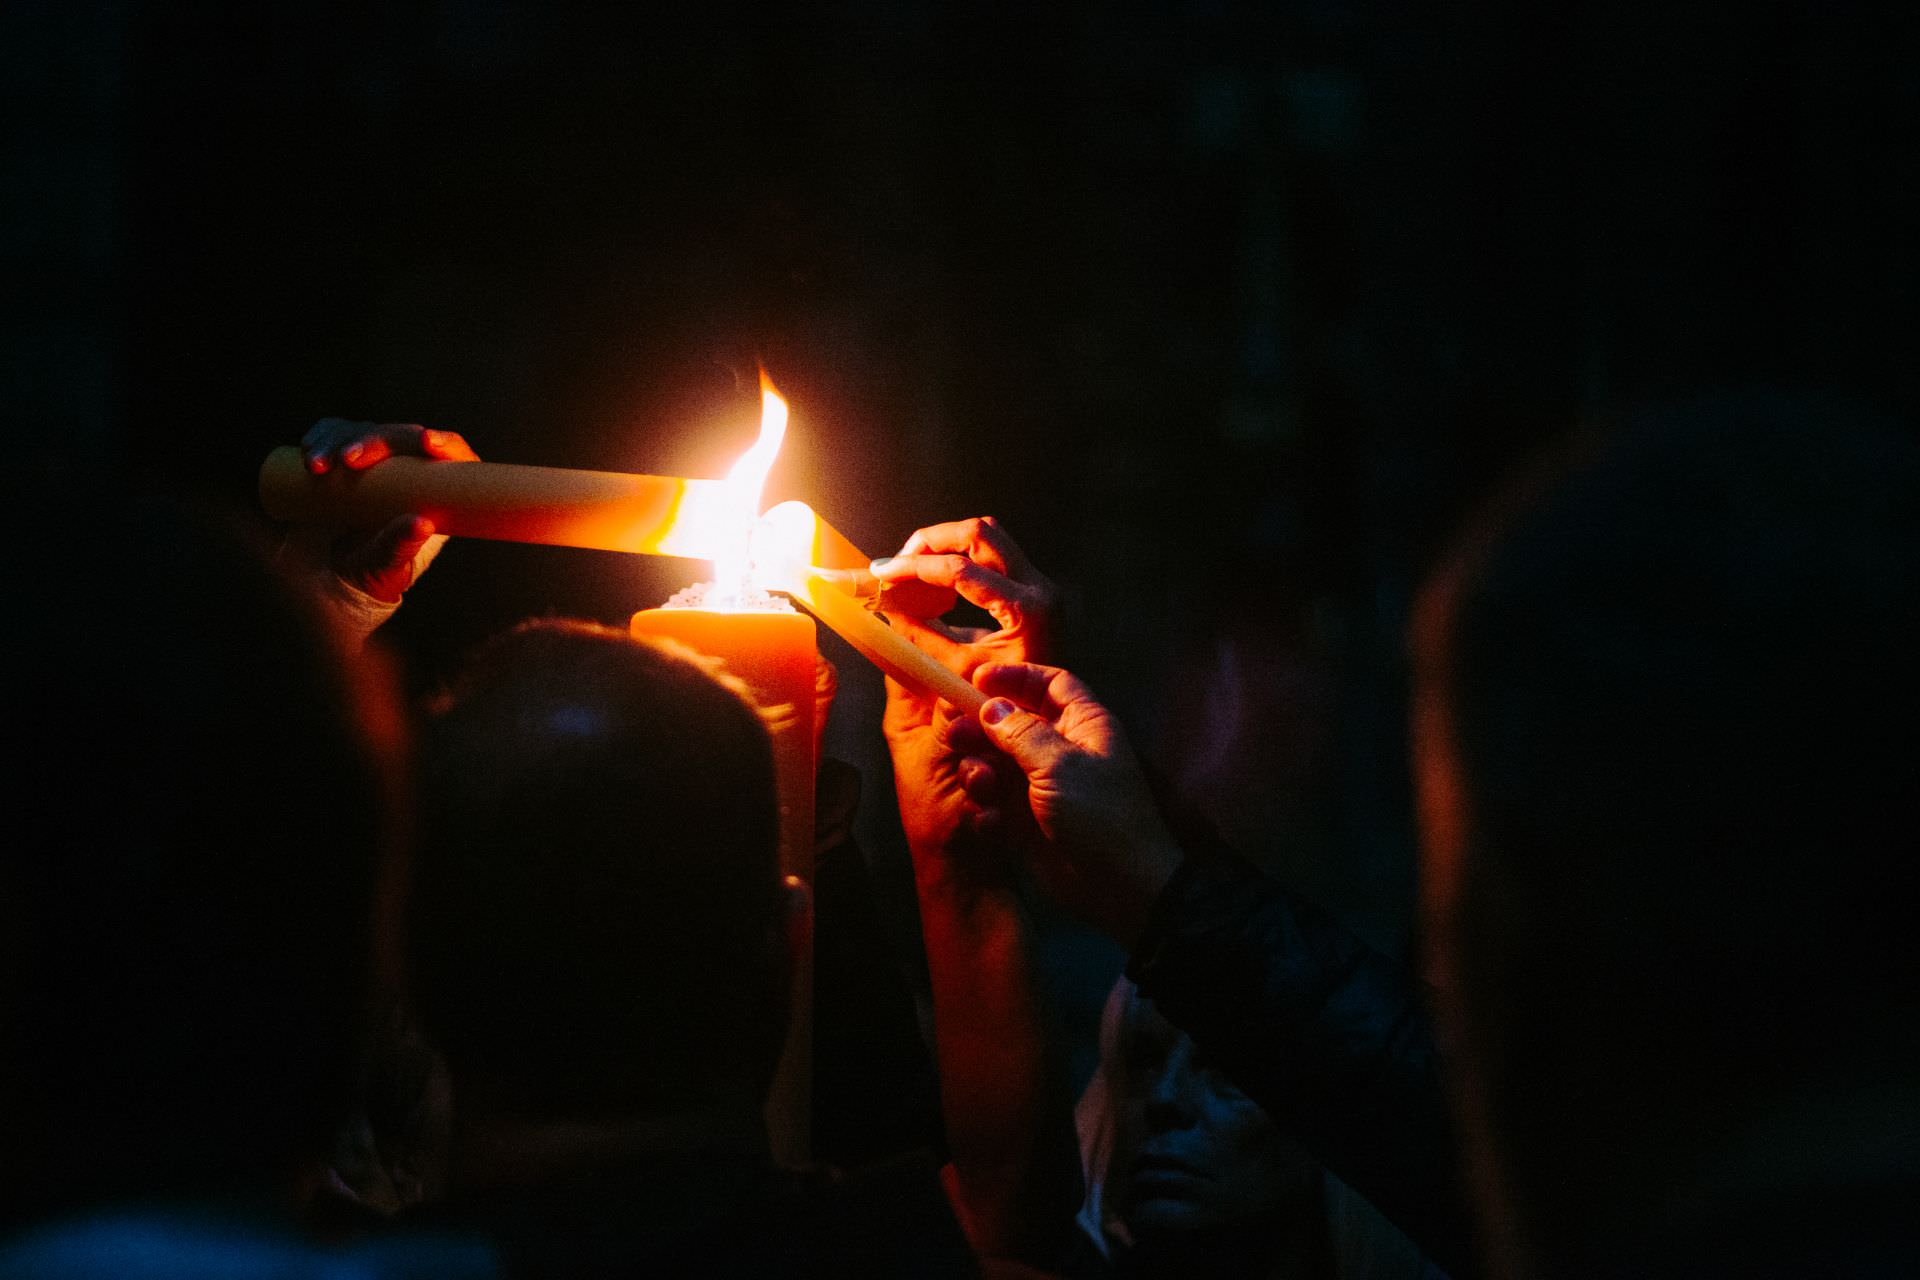 light, hands, sailing, darkness, turn on, candle, light, fire, easter vigil